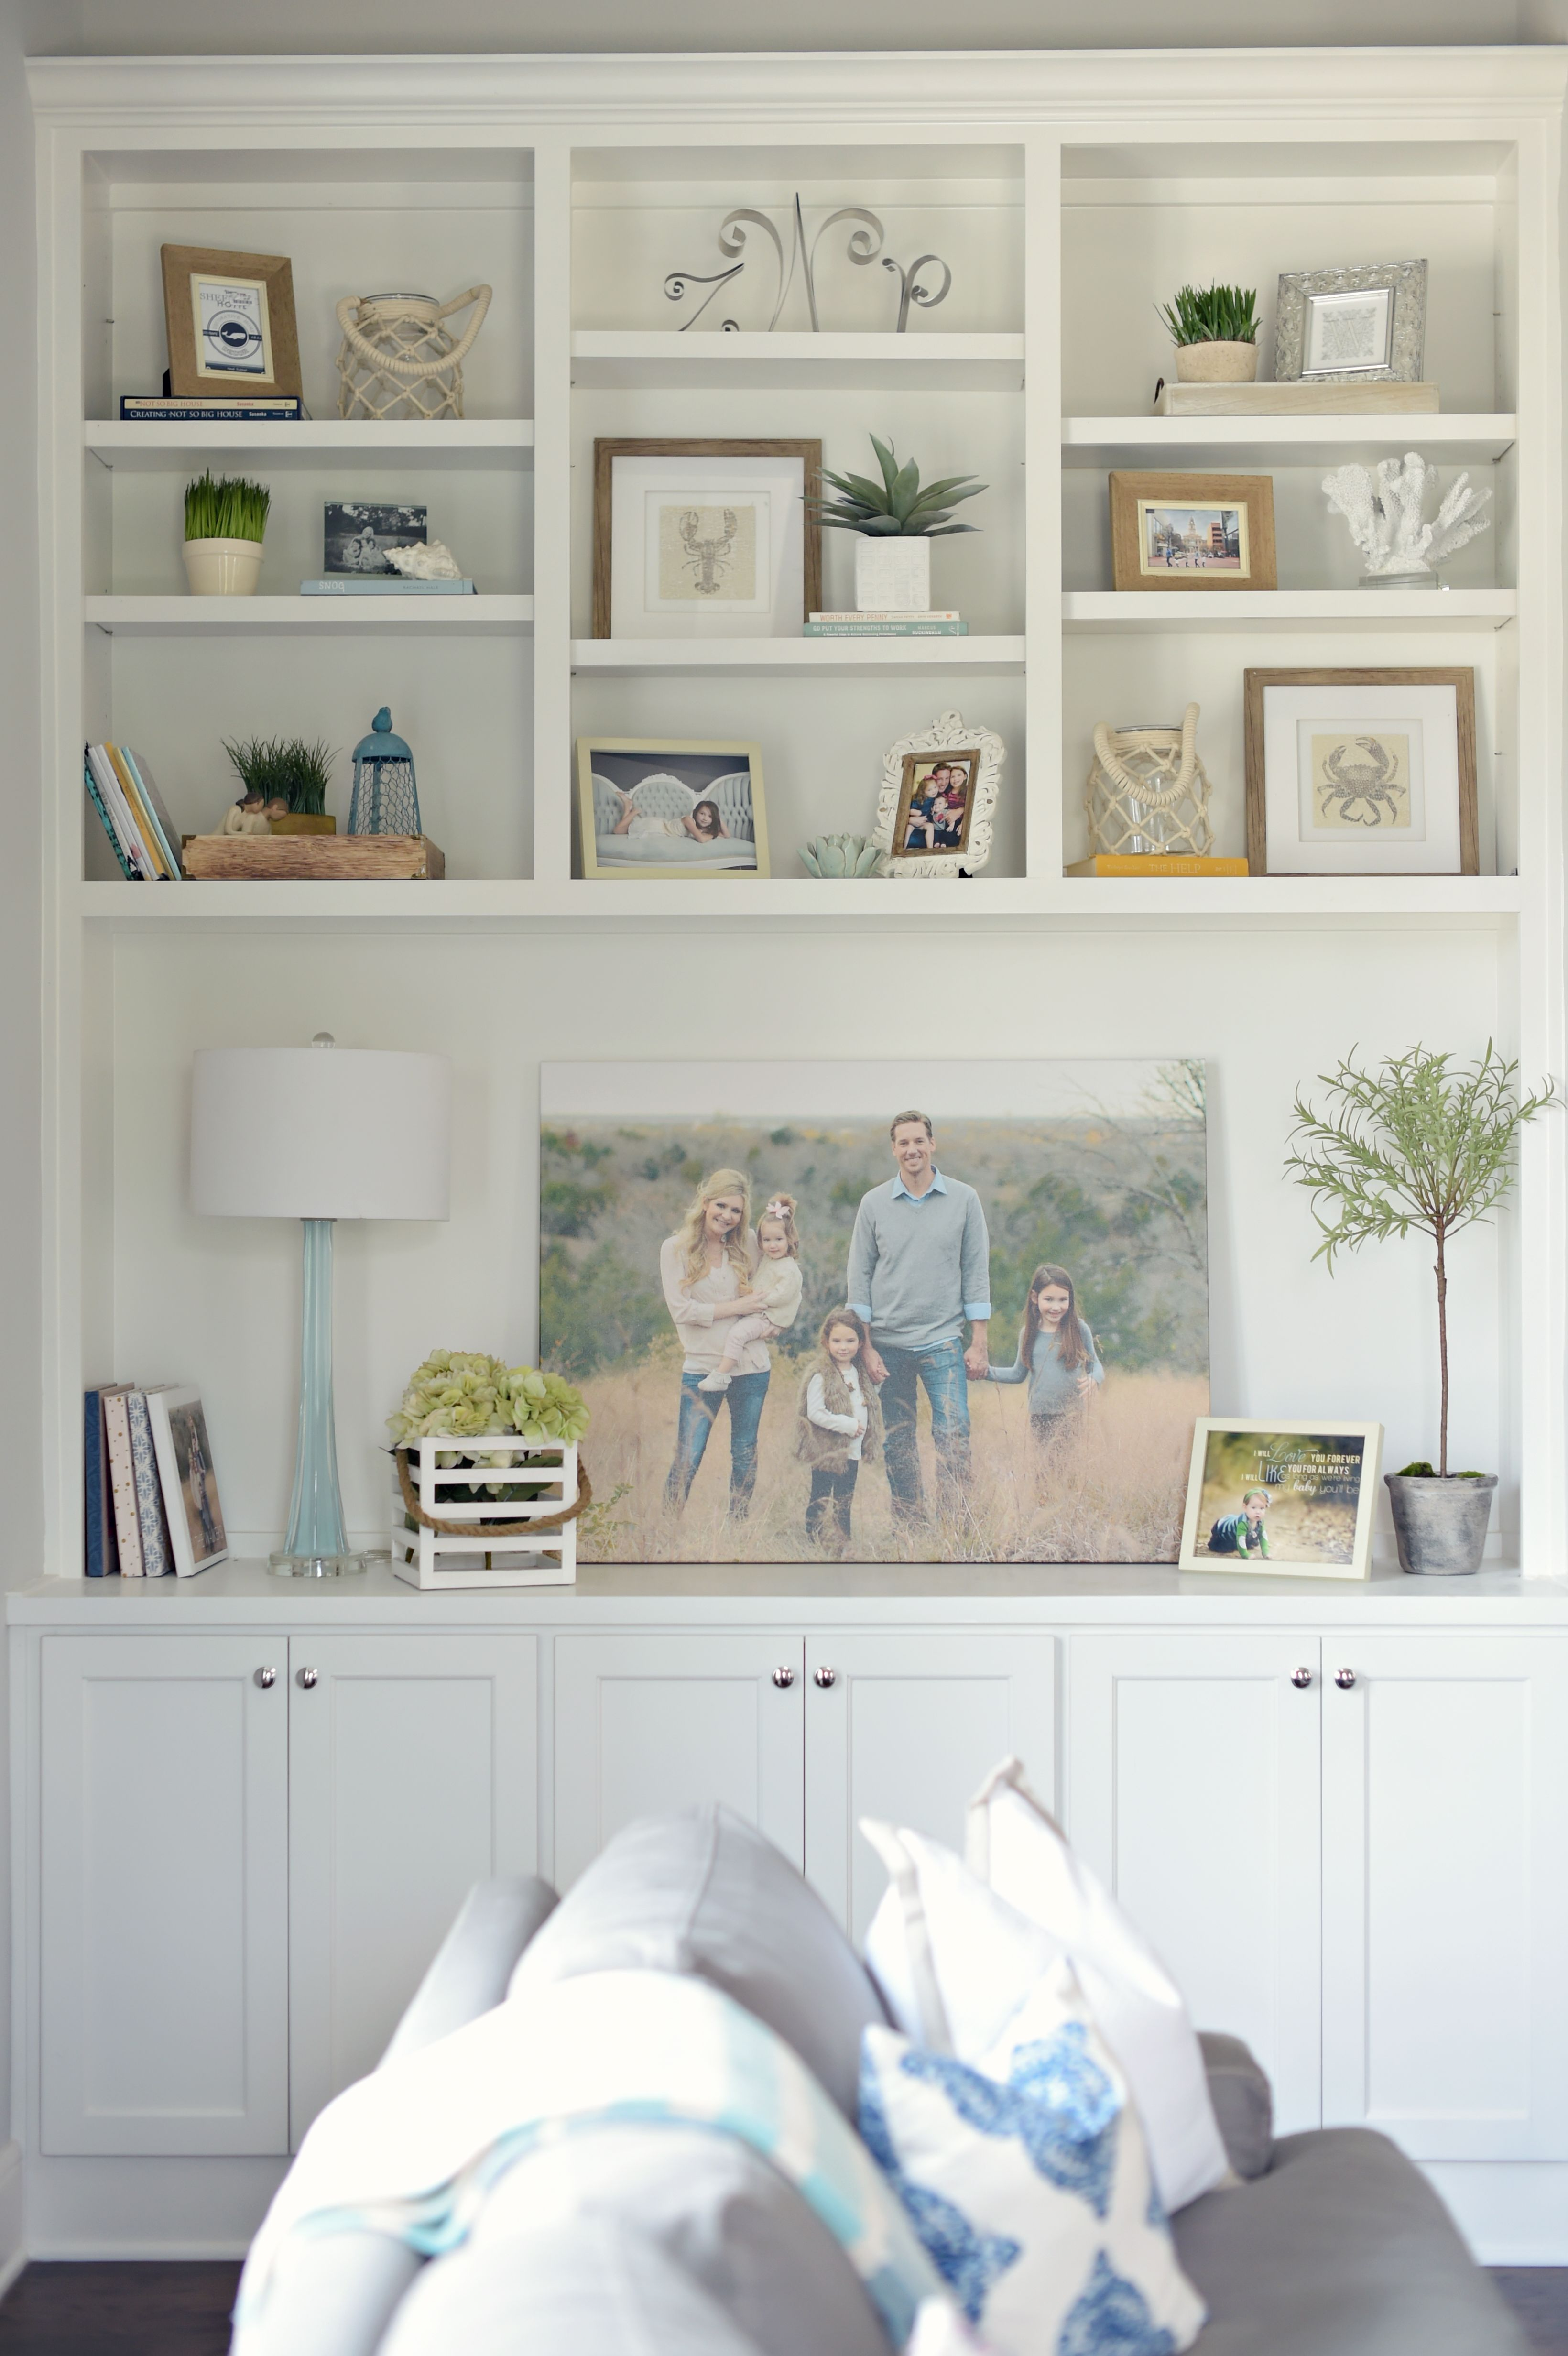 Bookcase Cabinets Living Room North Shore Leather Set Bookshelf Styling Dayme Walther Love This Look Pinterest Shelving In Wall Decorating